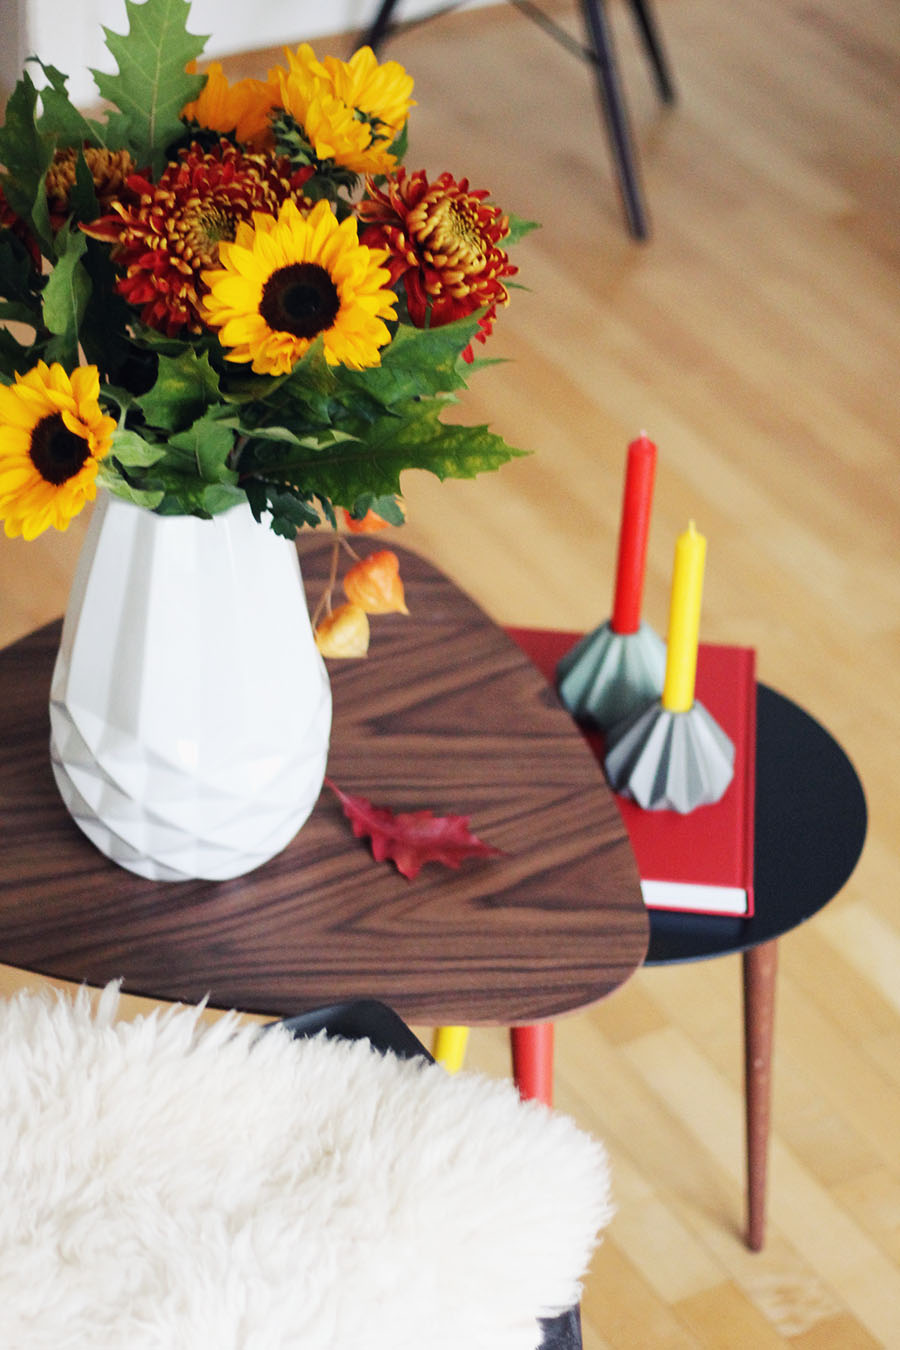 nicetohavemag-mycs-interiorblogger-coffeetable-interiordesign-germandesign-sonnenblumen-herbstdeko